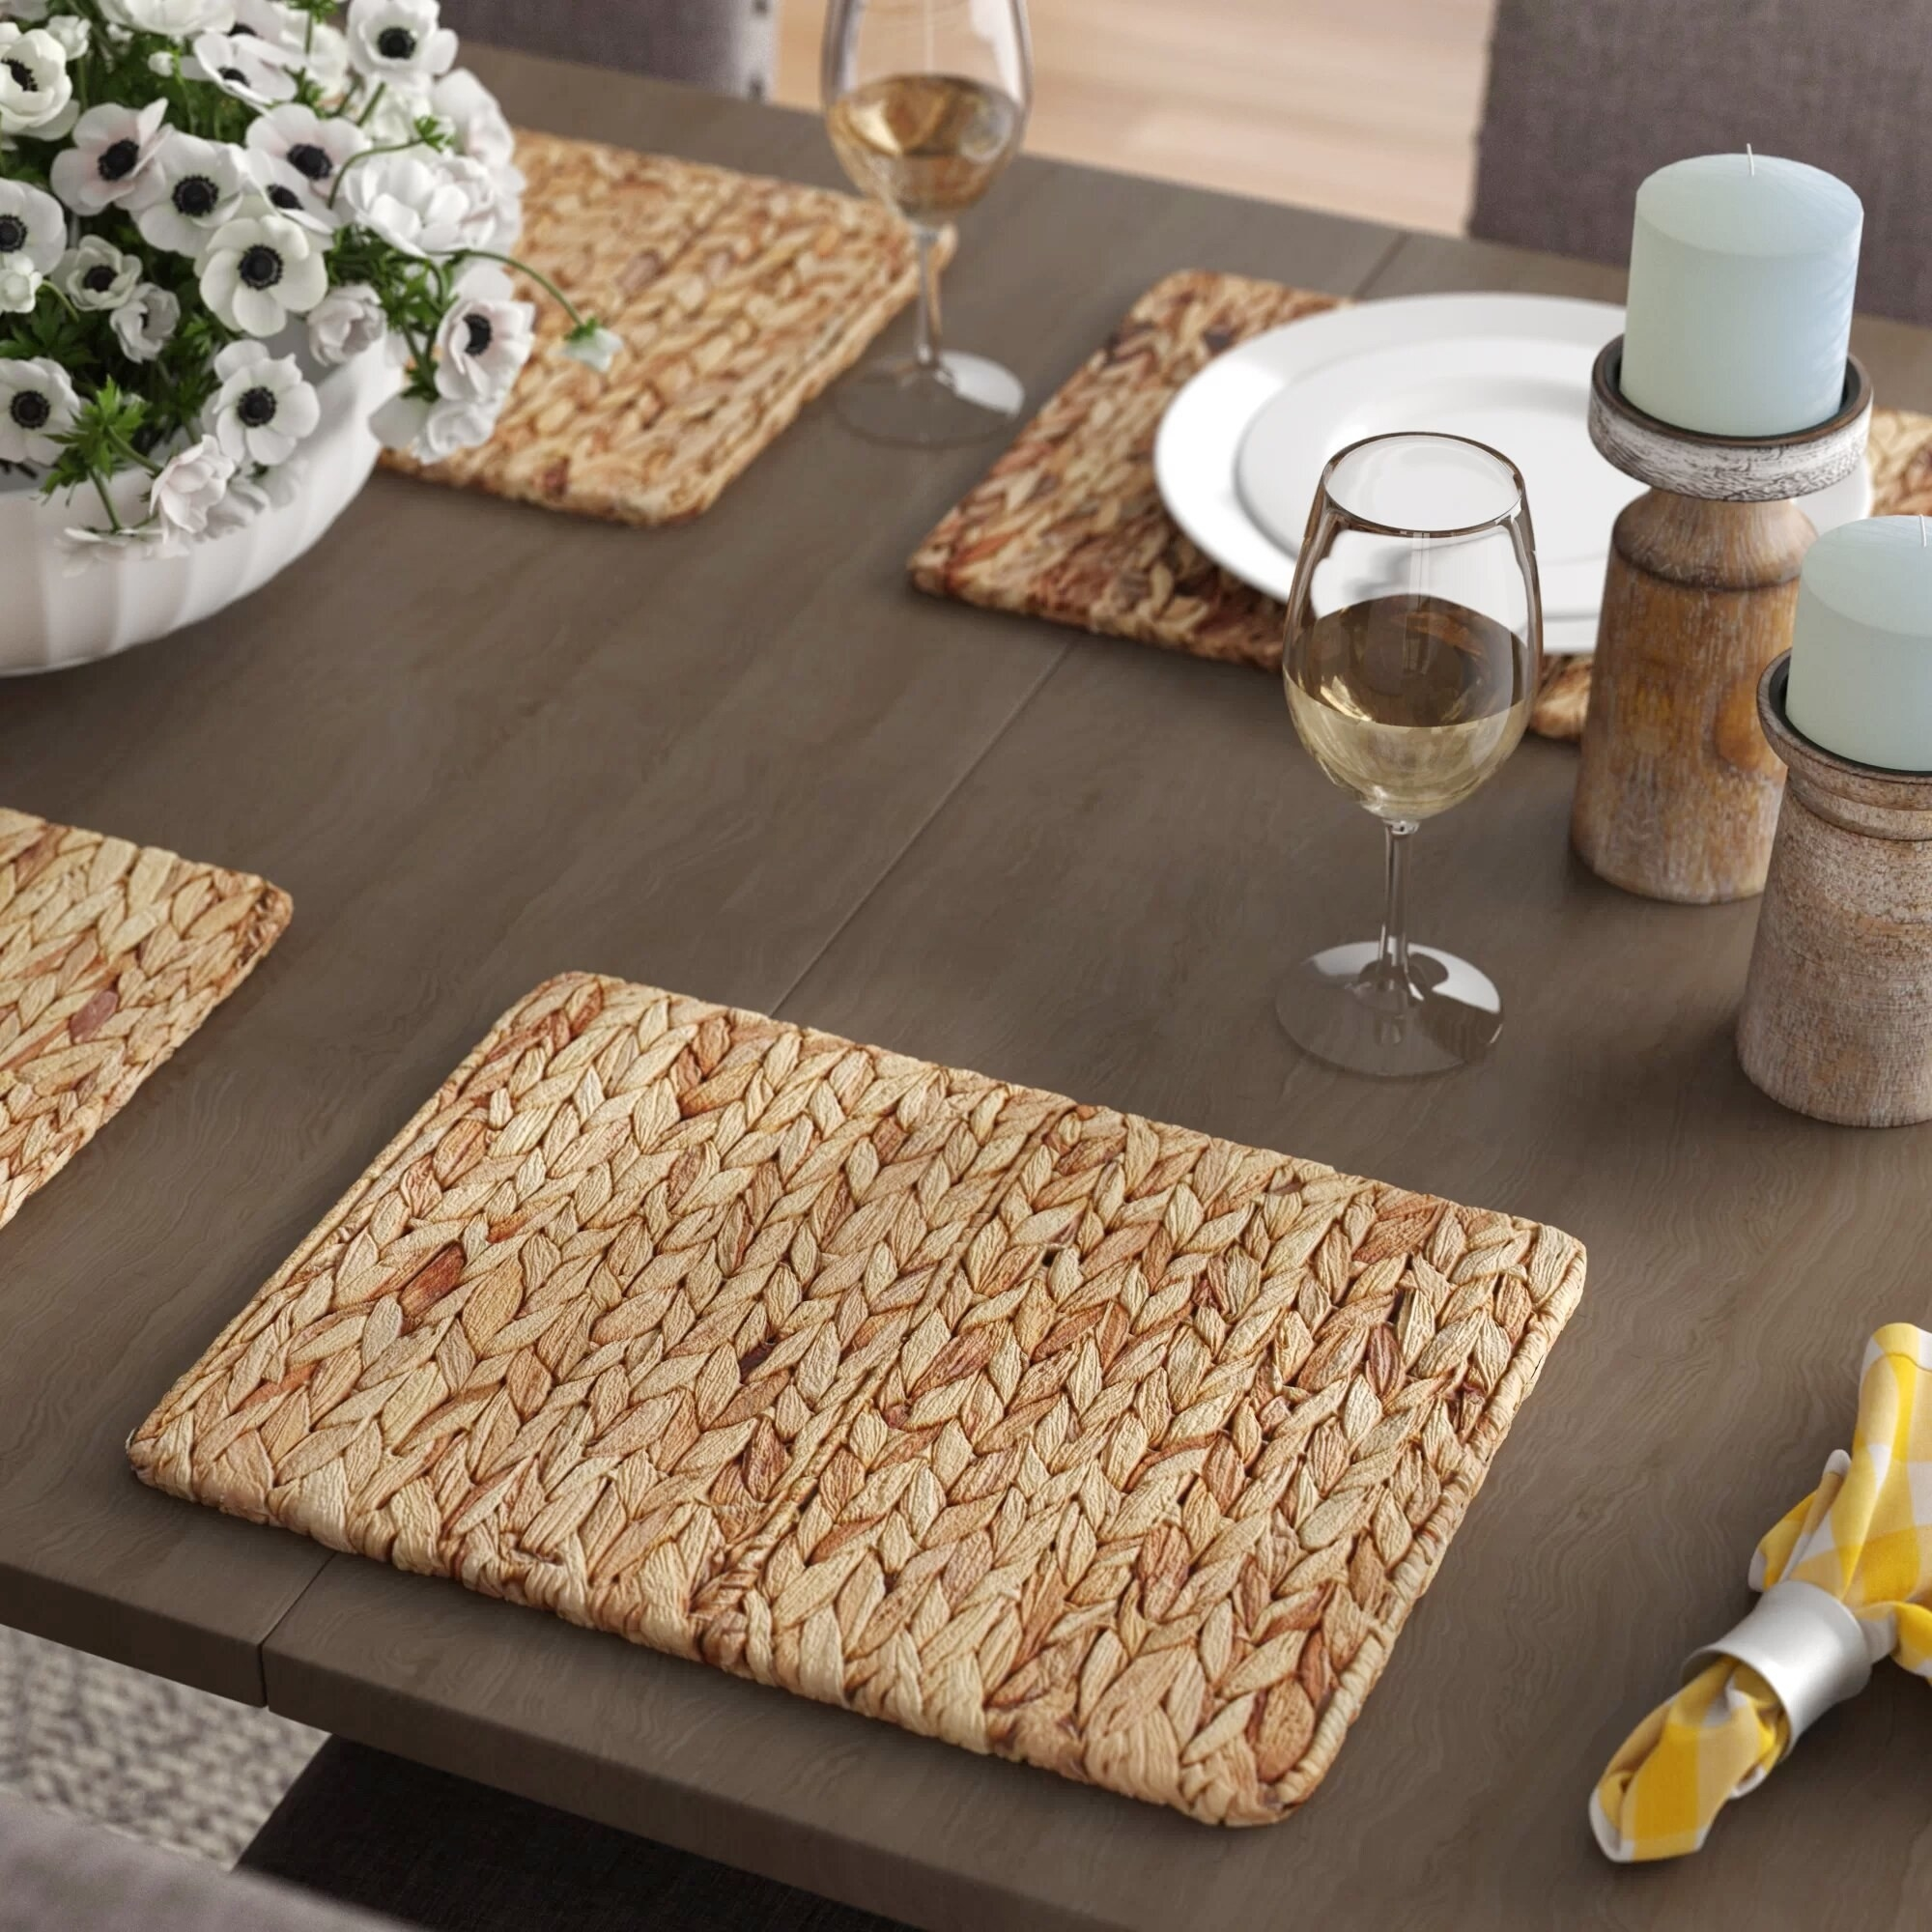 Wicker placemat on table